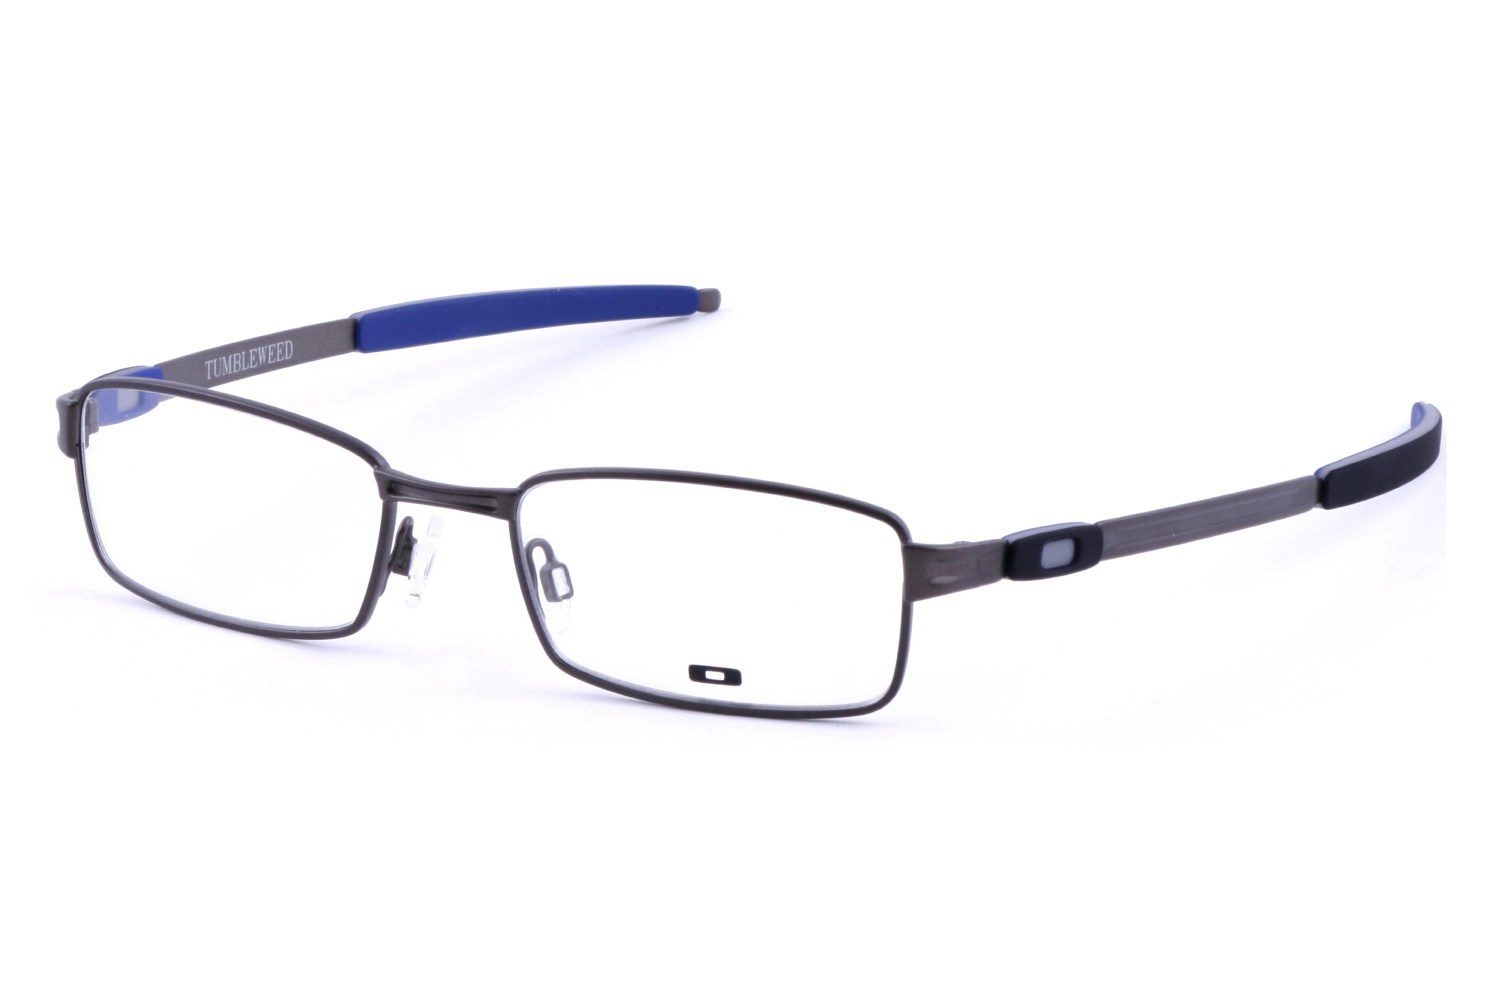 oakley tumbleweed 51 prescription eyeglasses